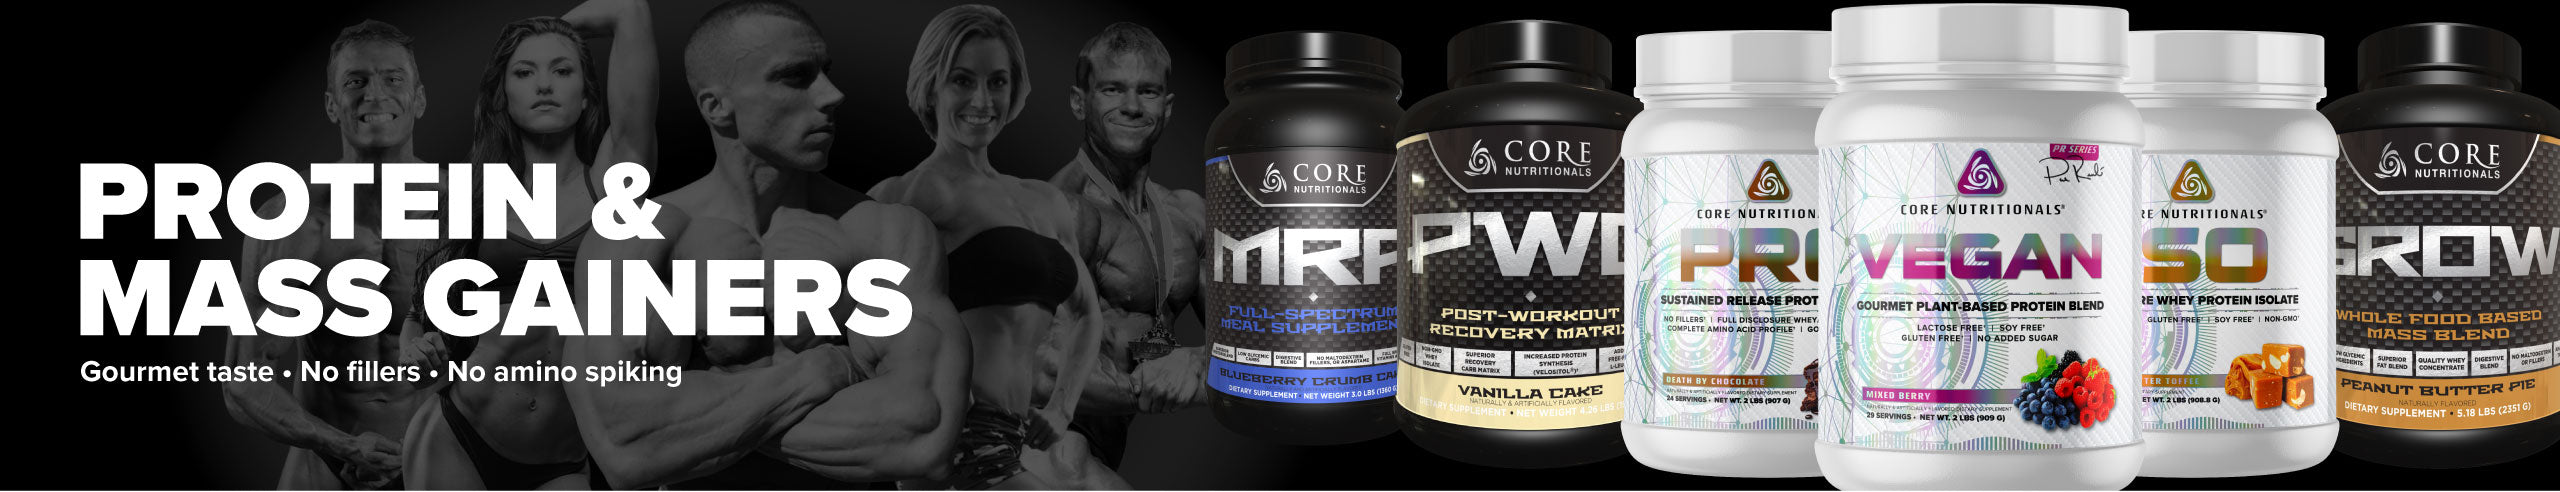 core protein and mass gainers